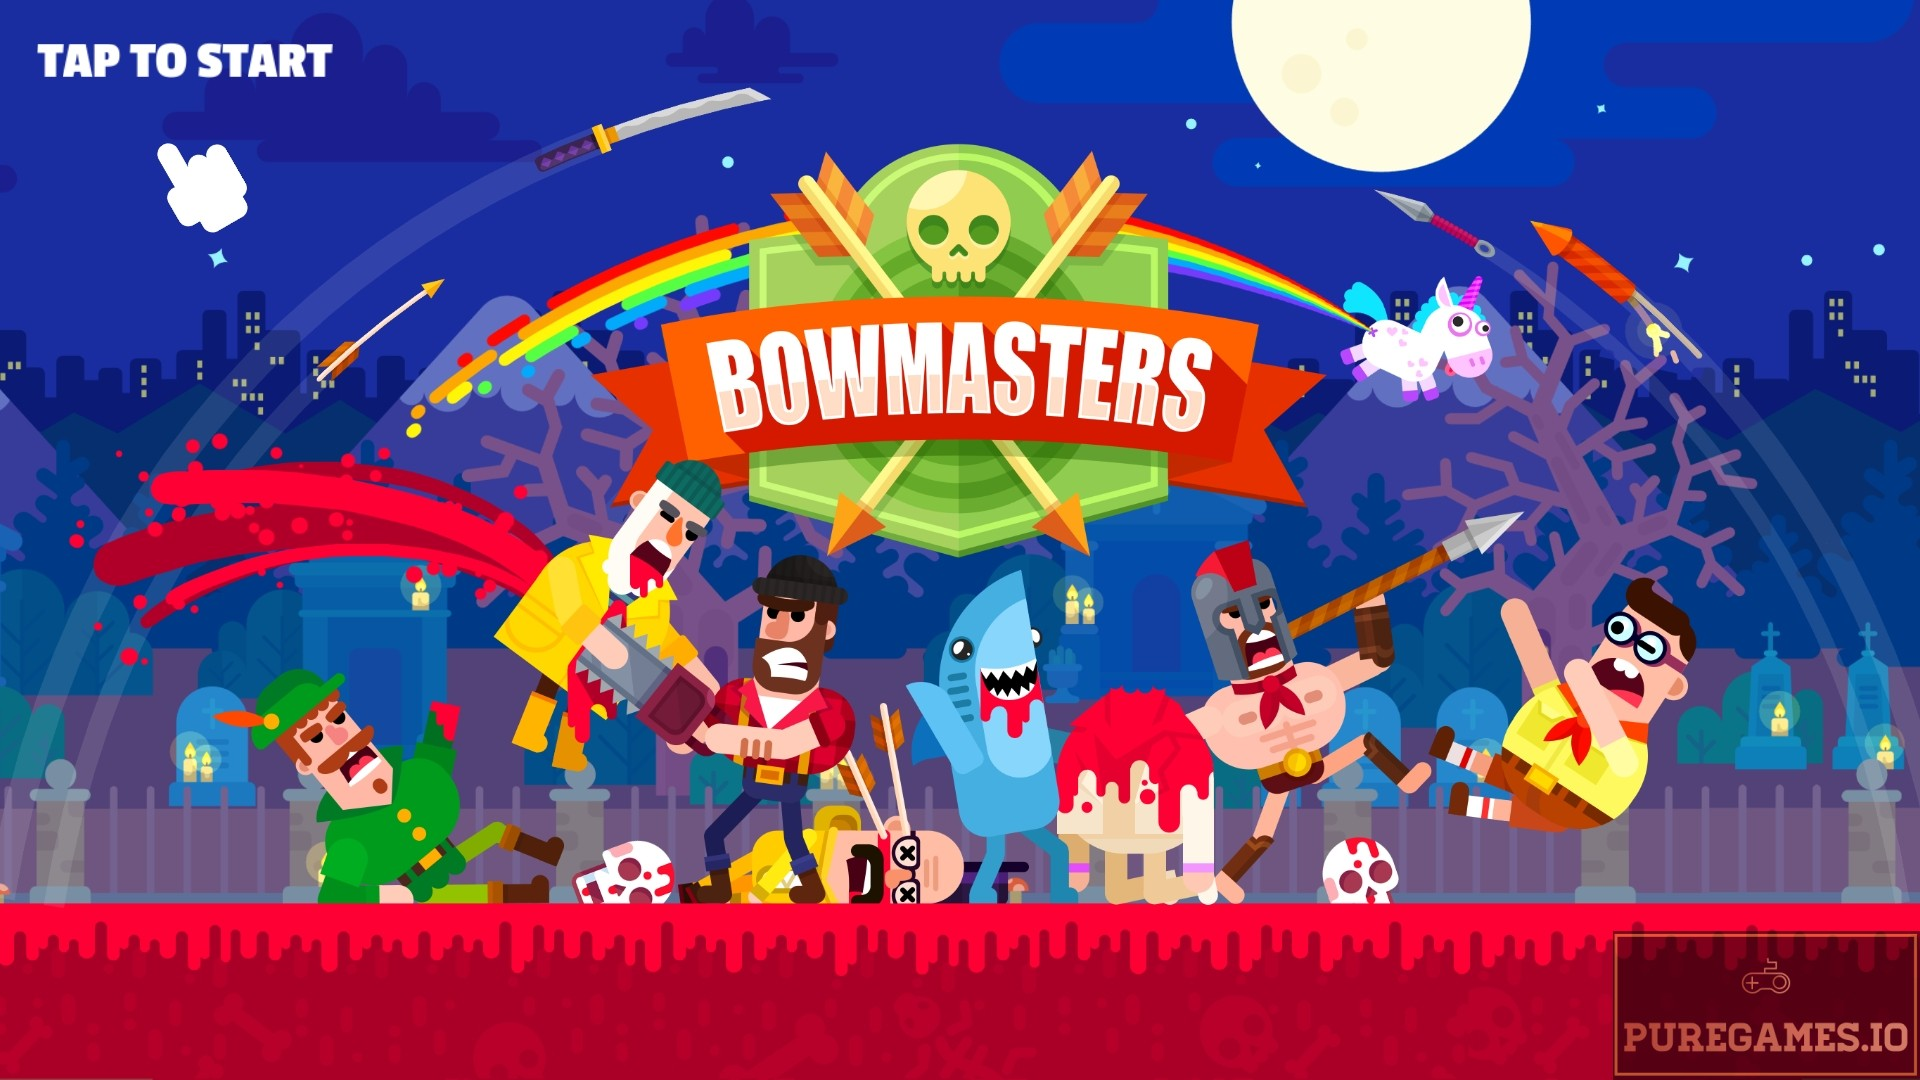 Download Bowmasters APK - For Android/iOS 18